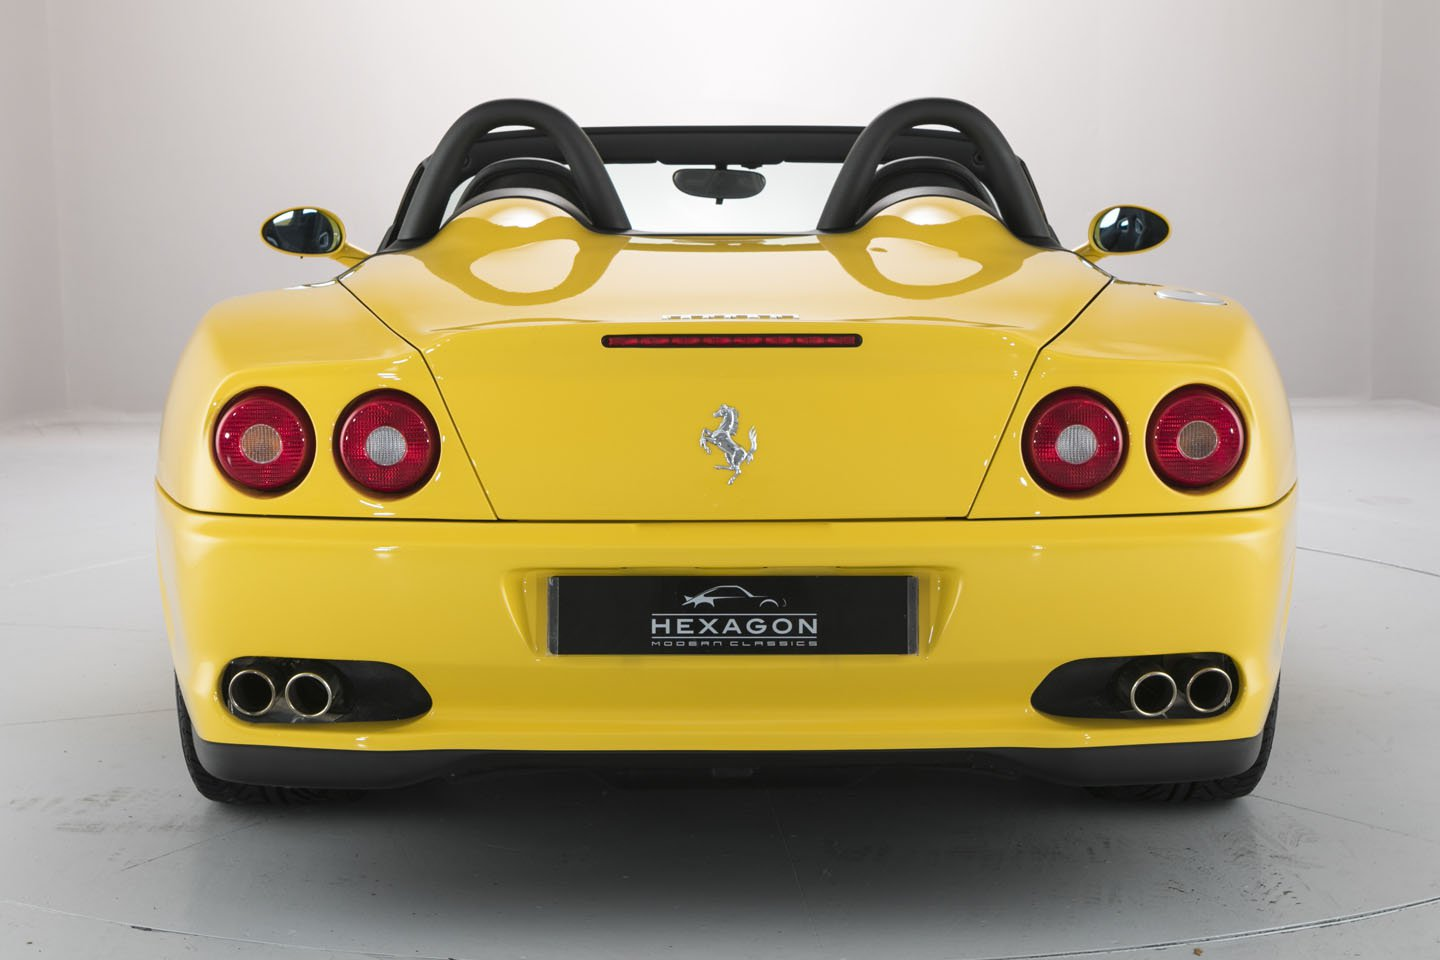 1234262_Ferrari 550 Barchetta rear